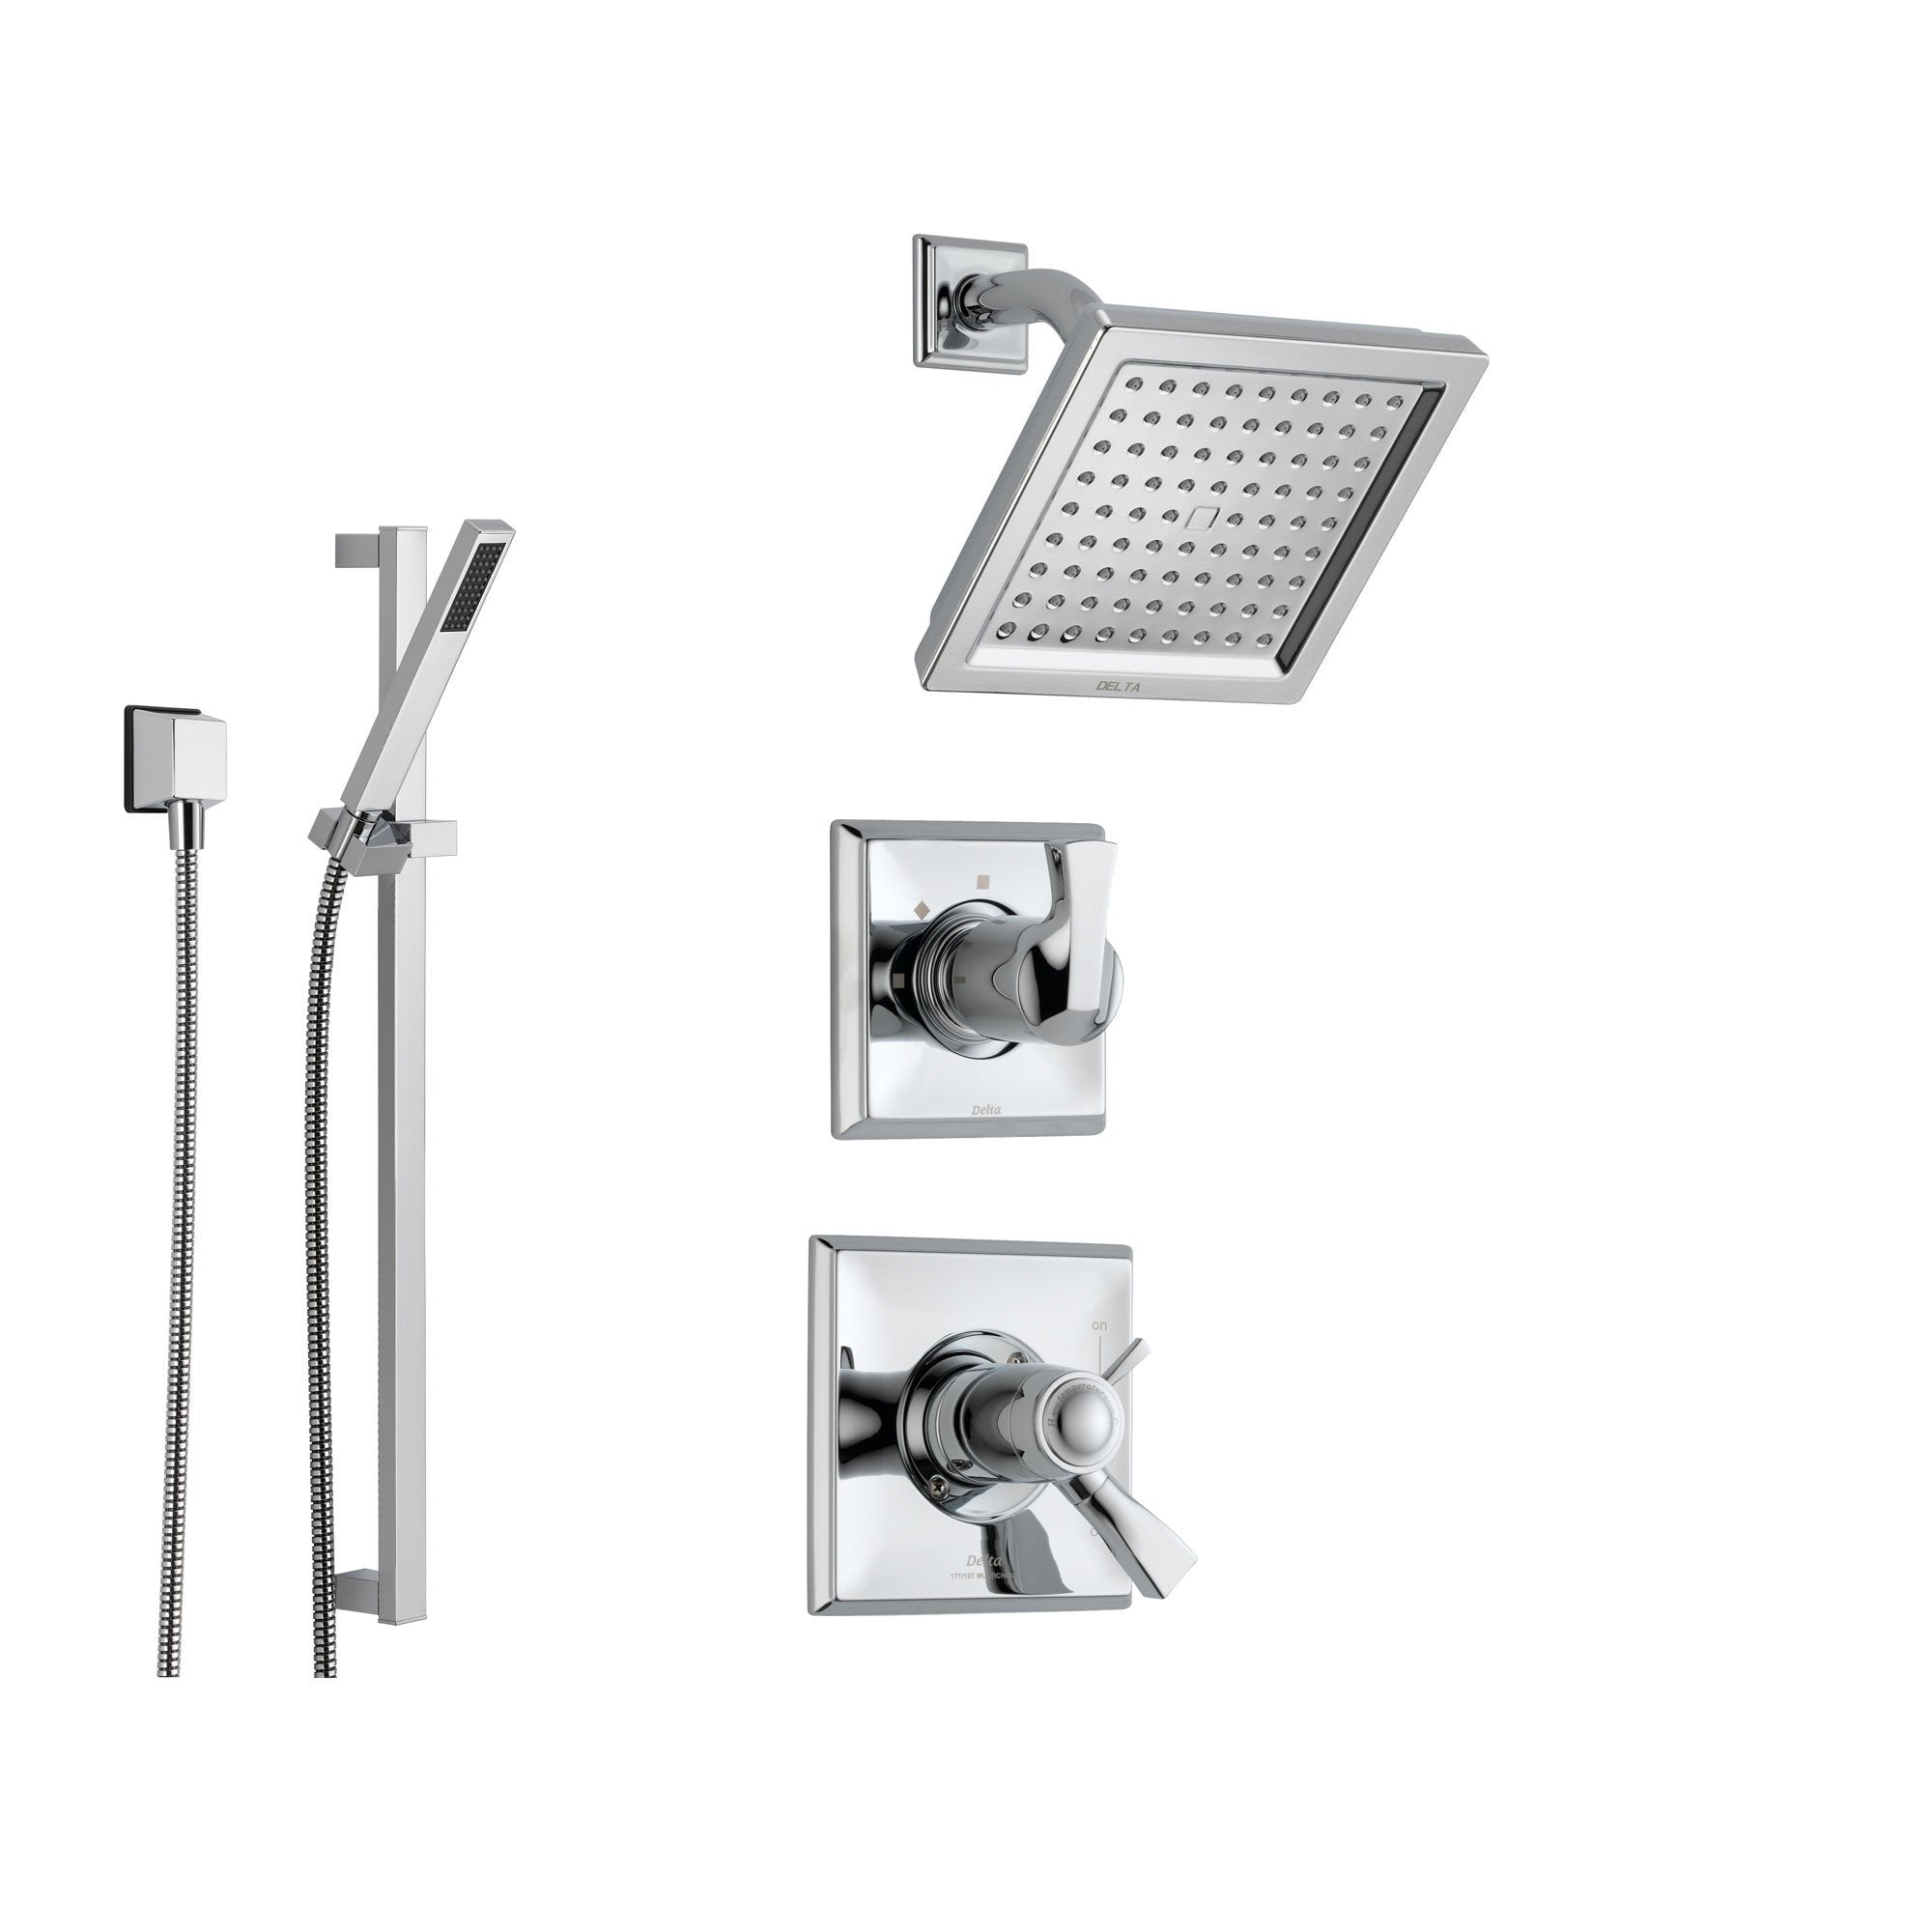 Delta Dryden Chrome Shower System with Thermostatic Shower Handle, 3-setting Diverter, Modern Square Showerhead, and Handheld Shower SS17T5185